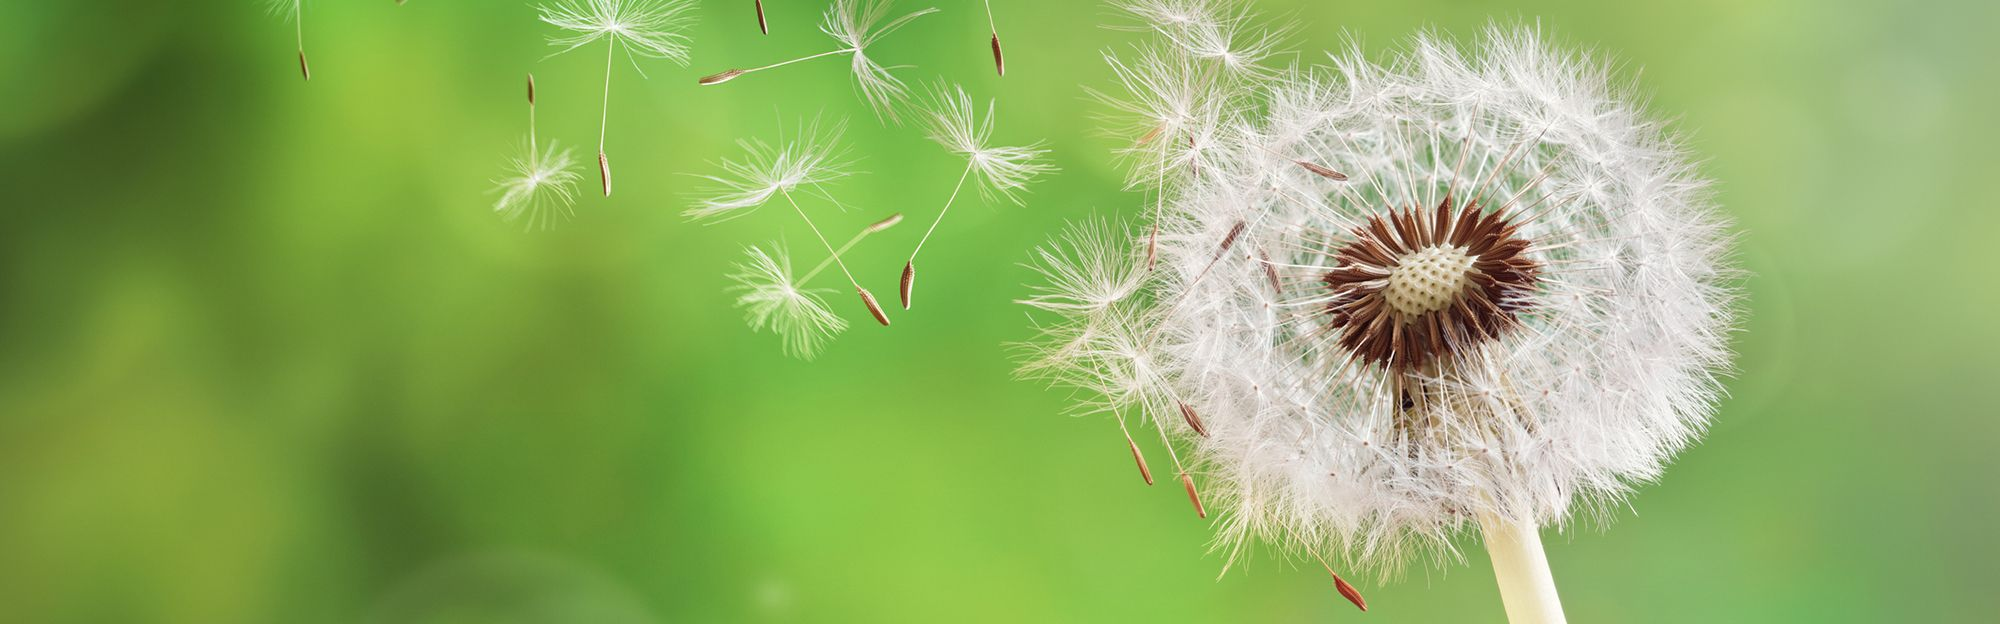 Close up of a germinated dandelion.